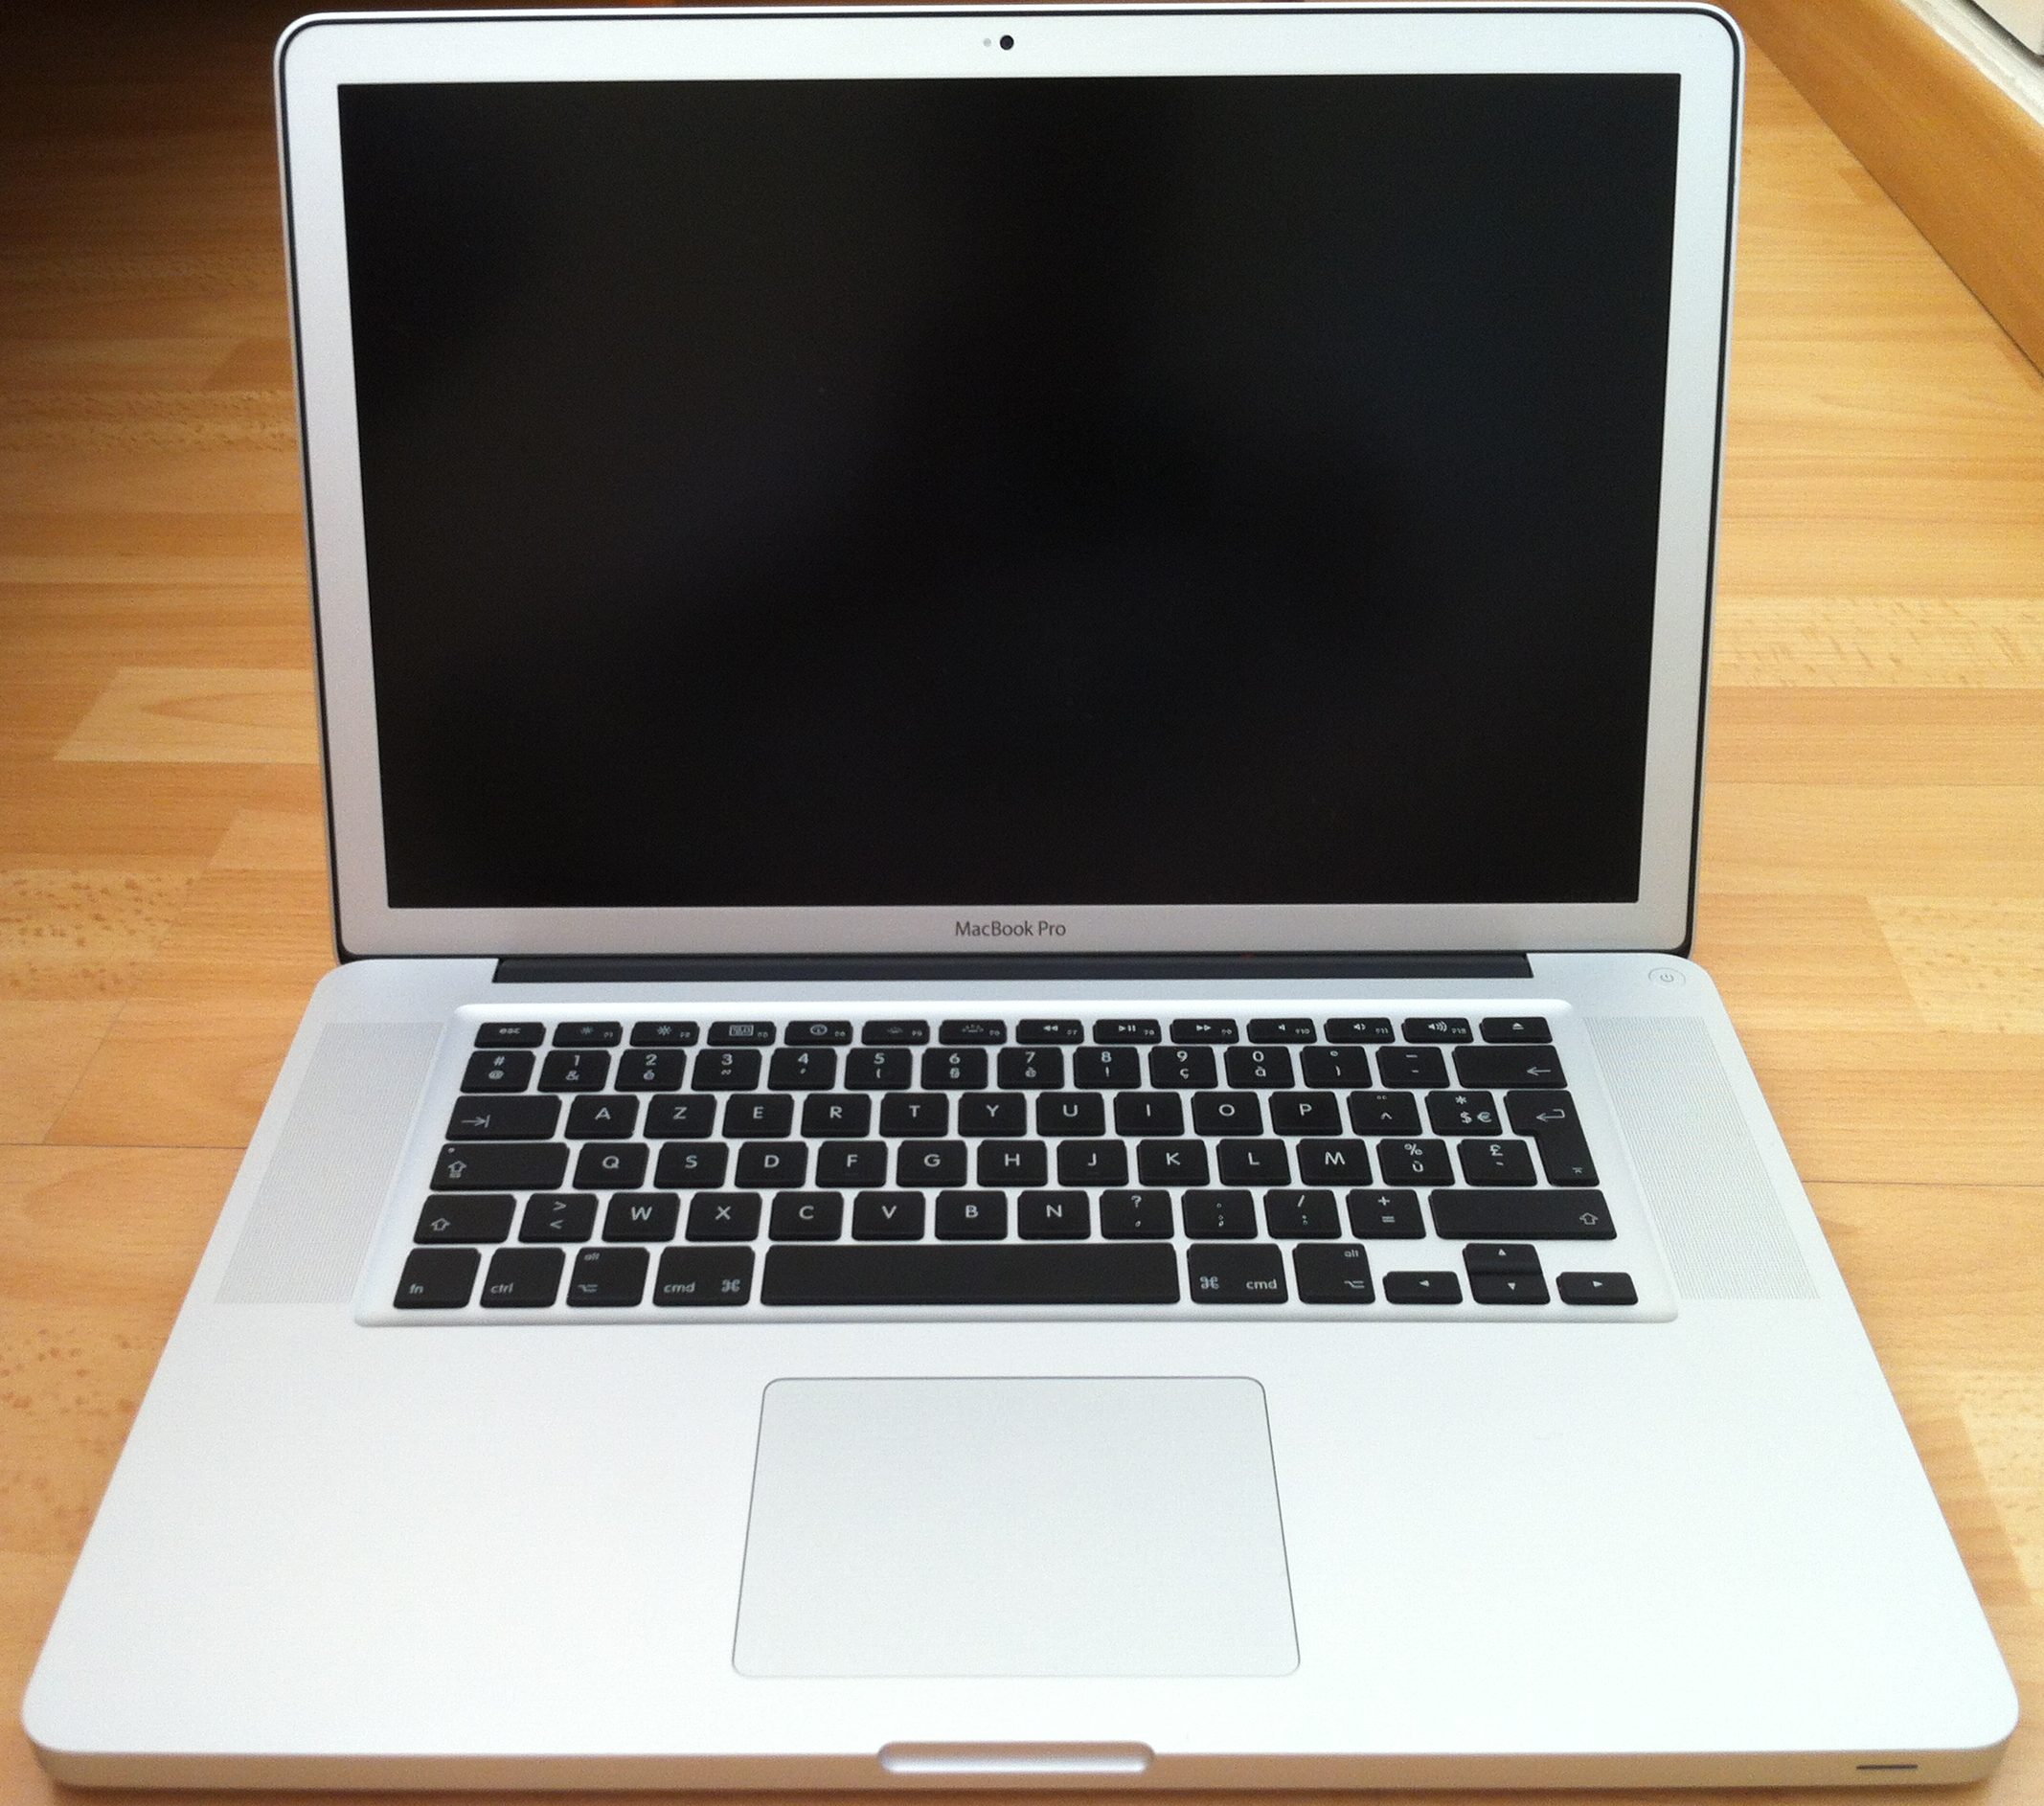 macbook pro 15 - photo #18